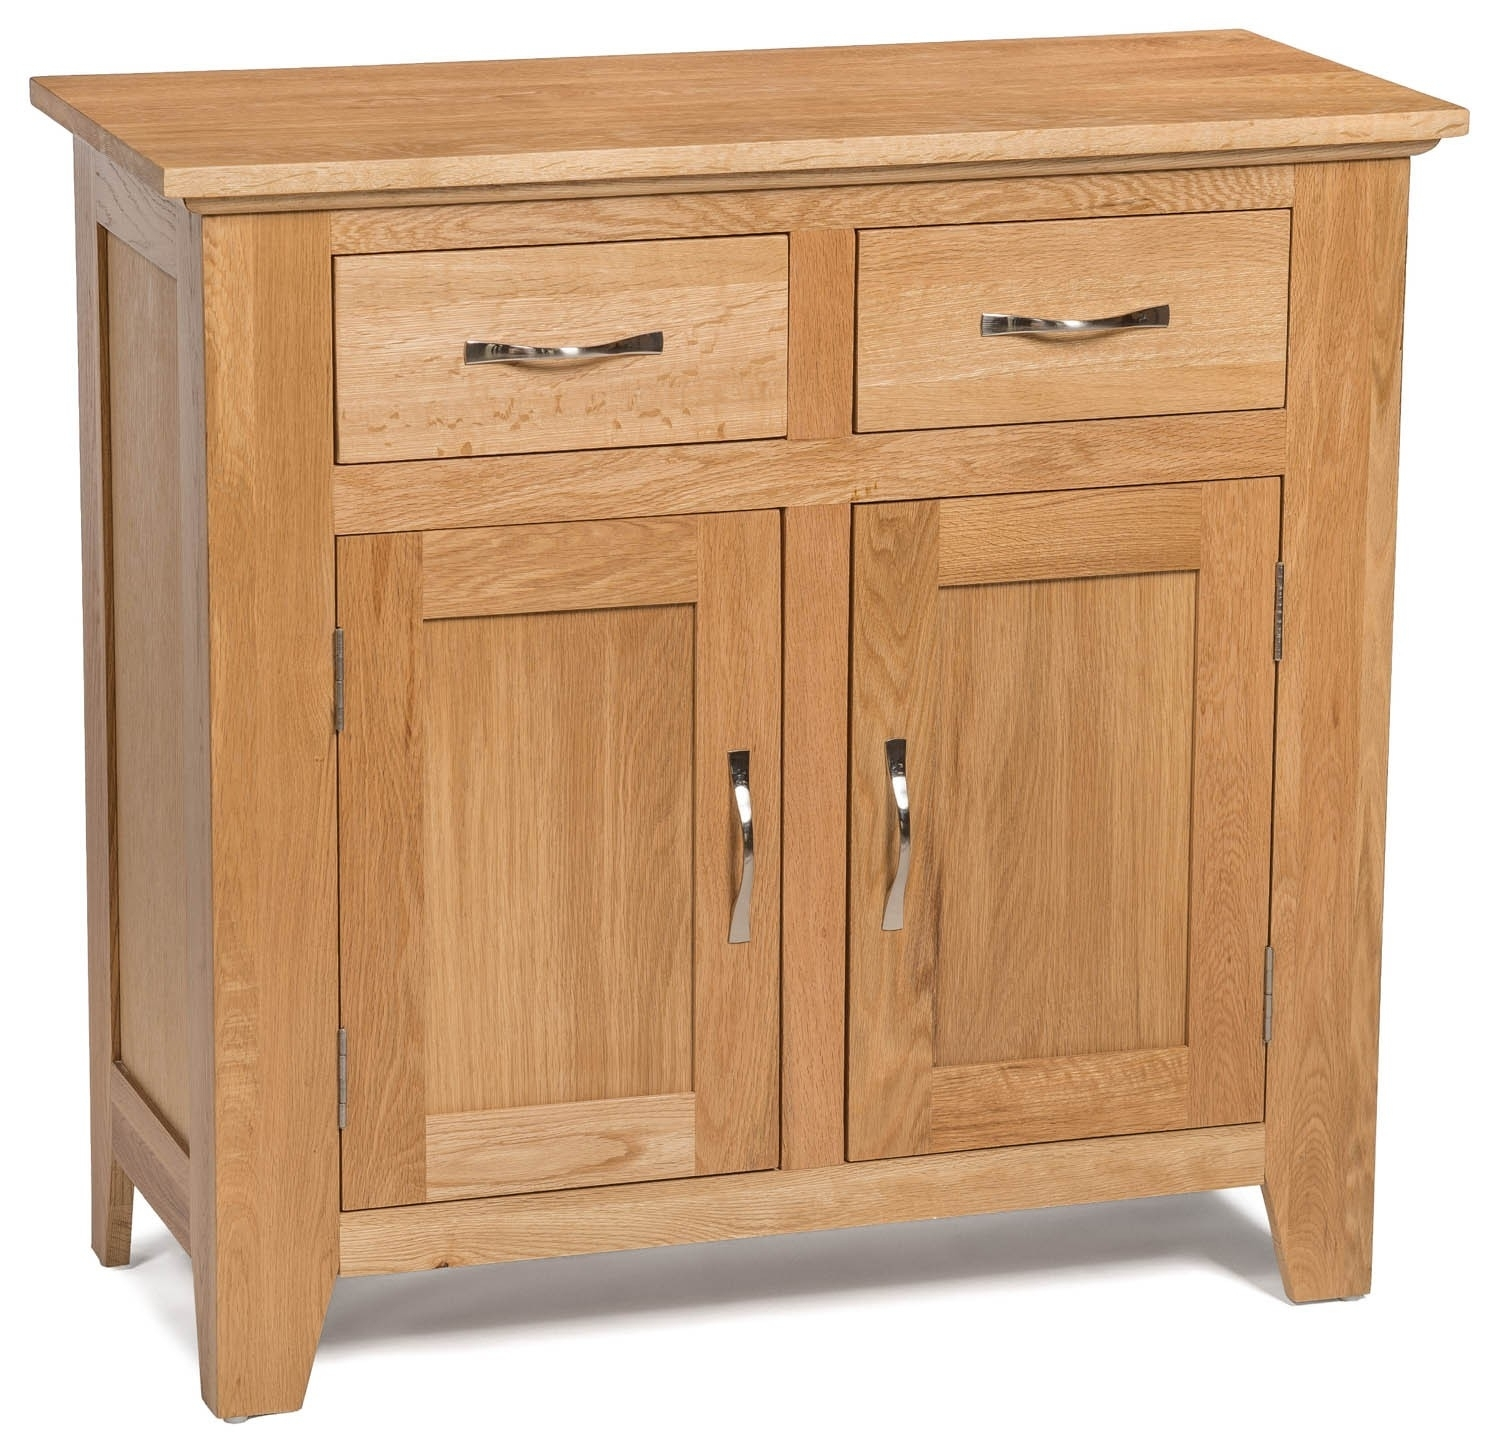 Popular Photo of 2 Drawer Sideboards